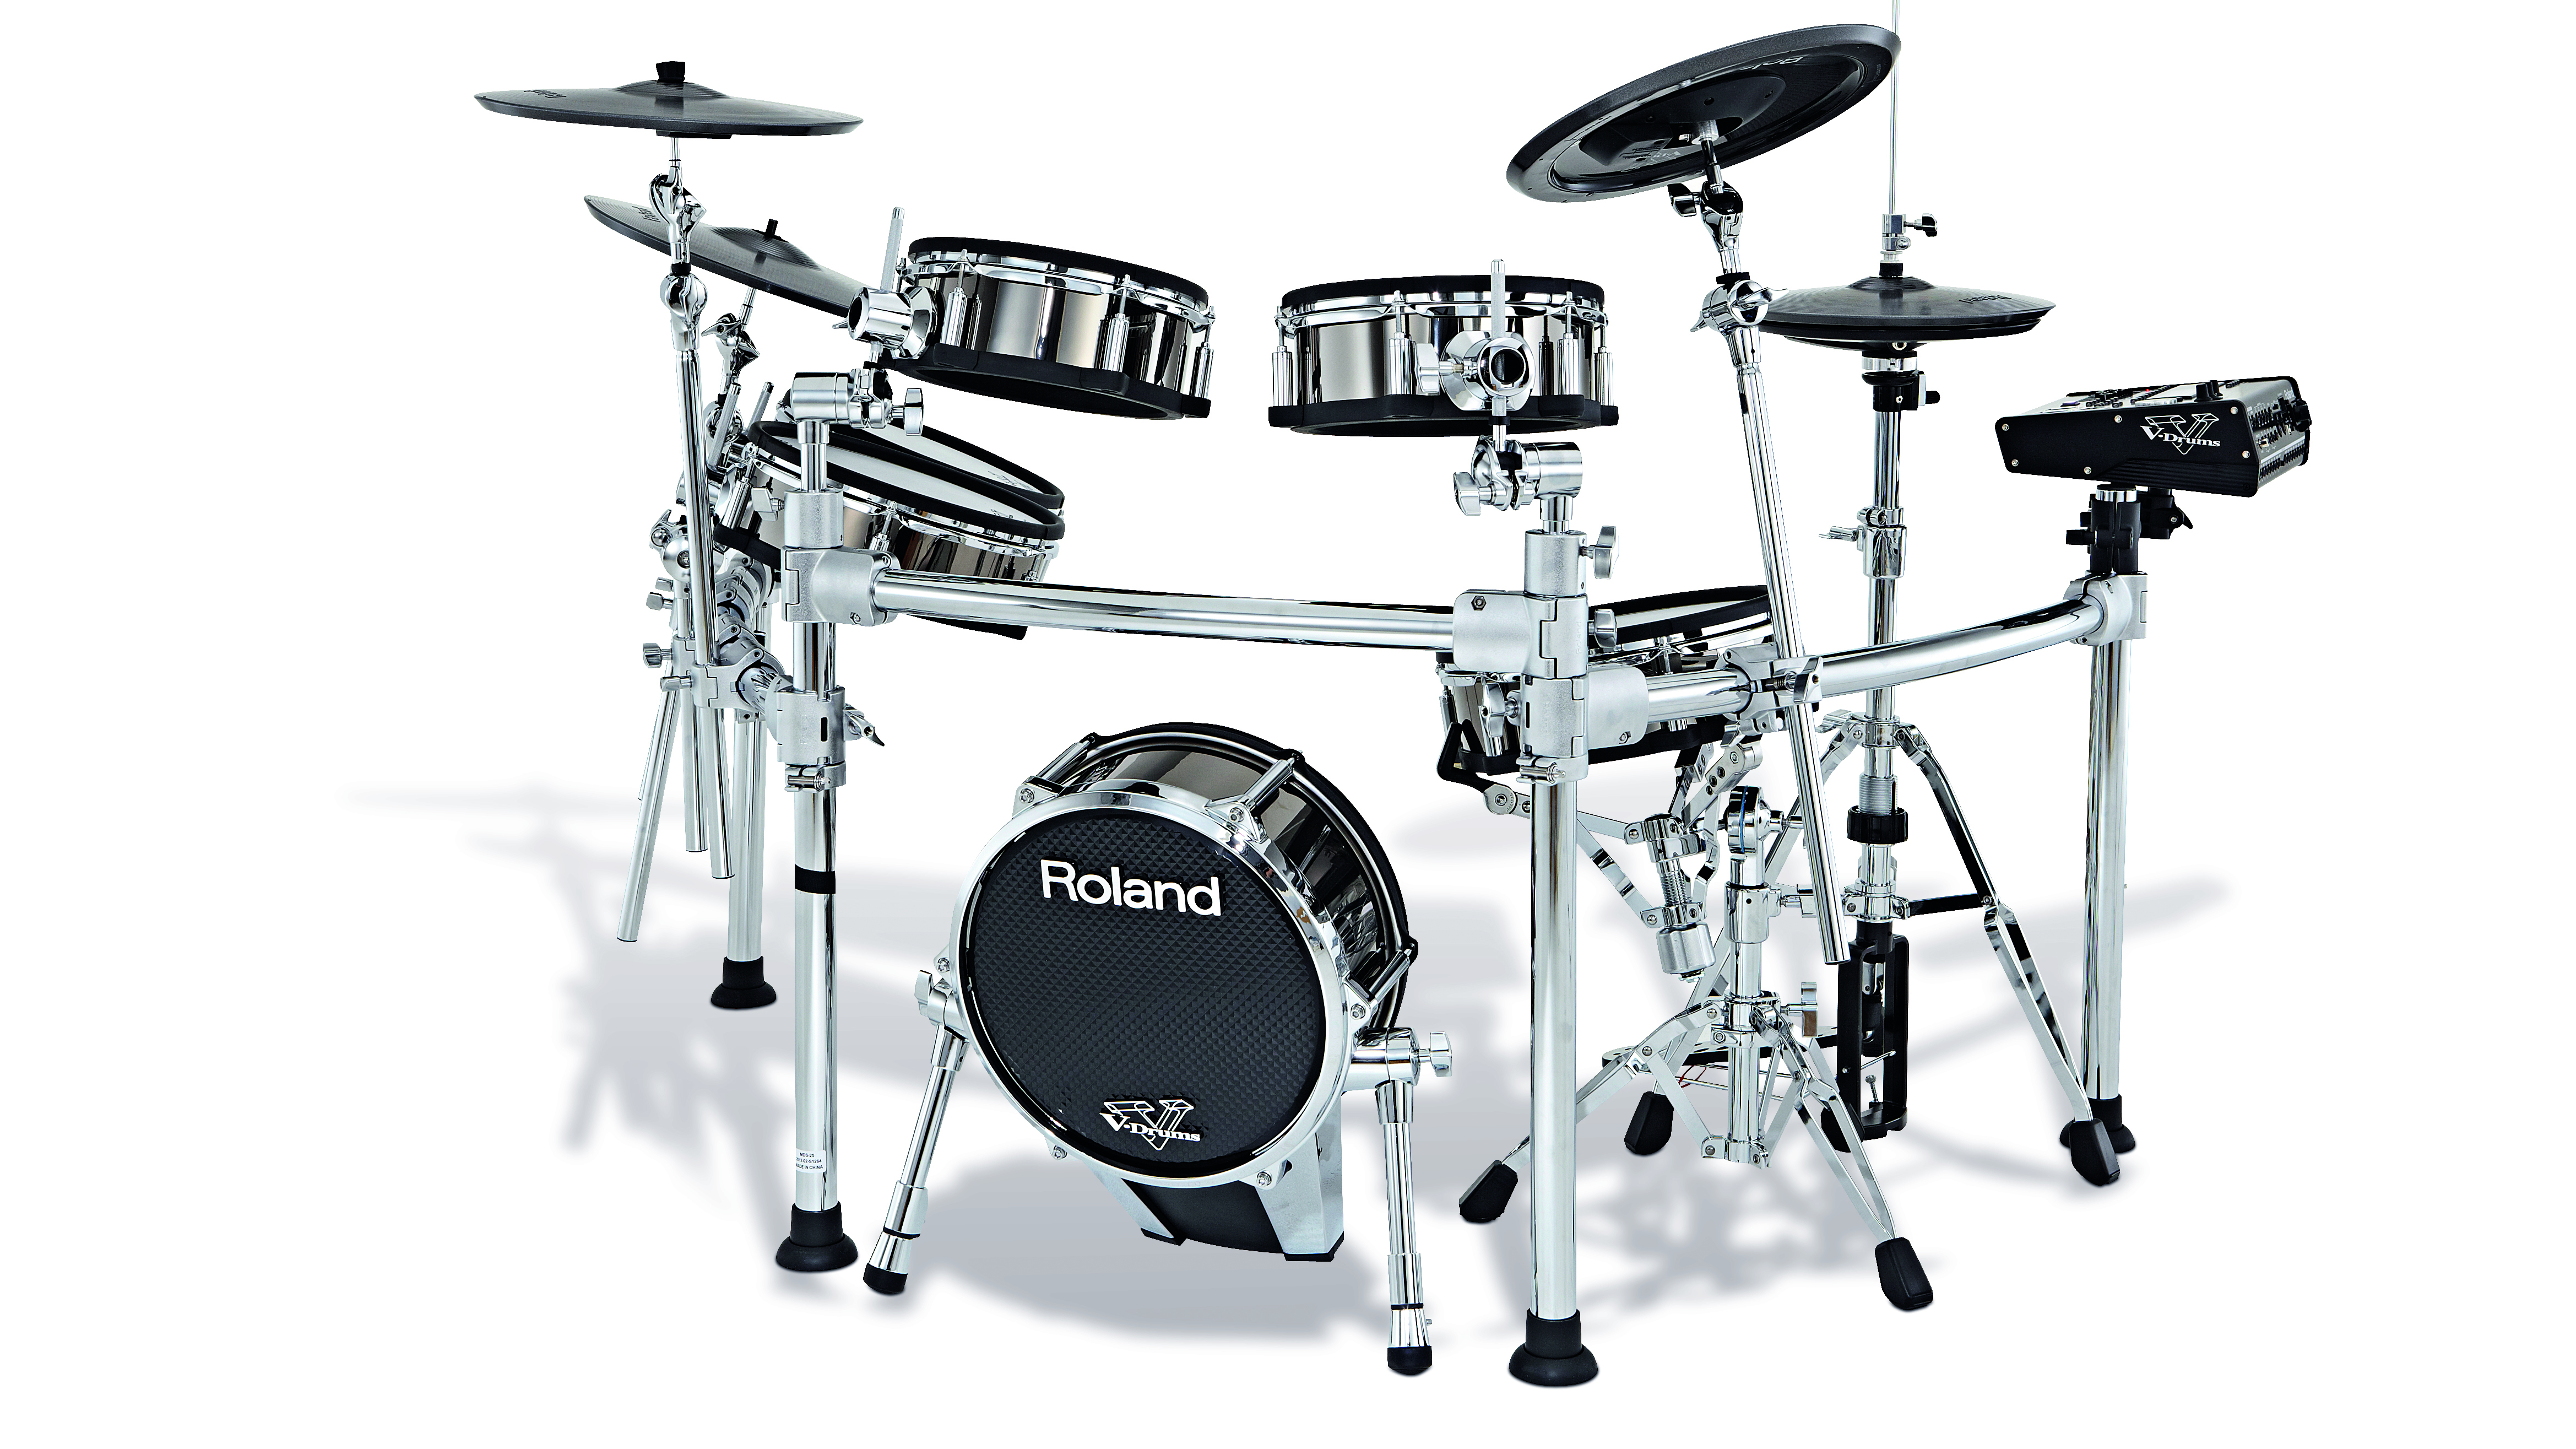 US electronic drum kit deal: $428 saving on the Roland V-Drums TD-50KV 5-piece Electronic Drum Set